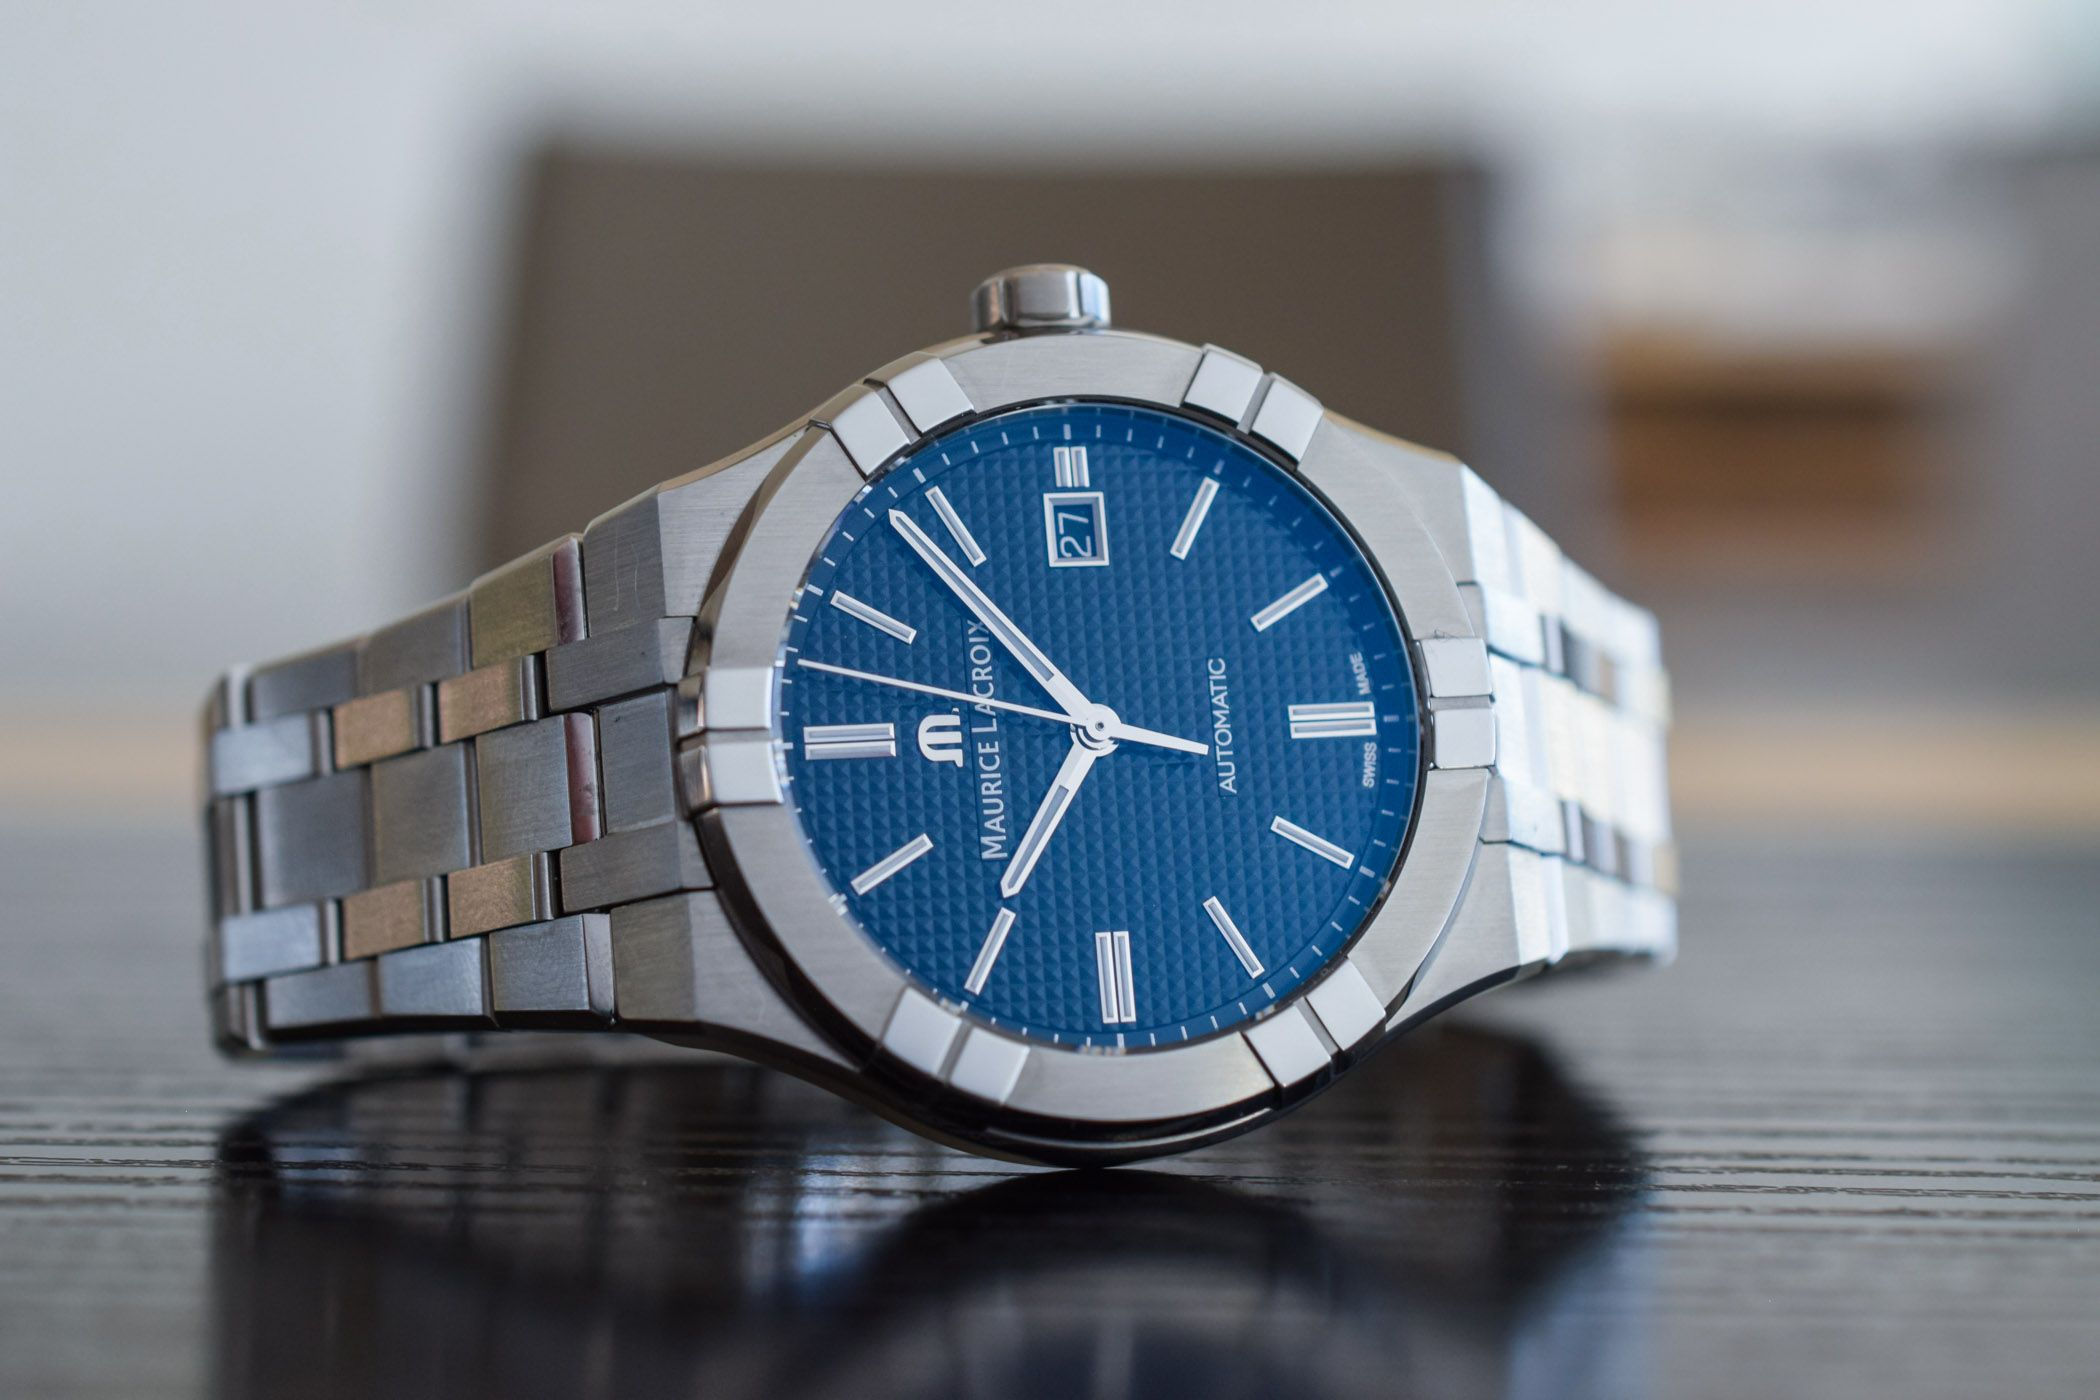 Maurice Lacroix Introduces Automatic (and accessible) versions of its Aikon - Monochrome Watches